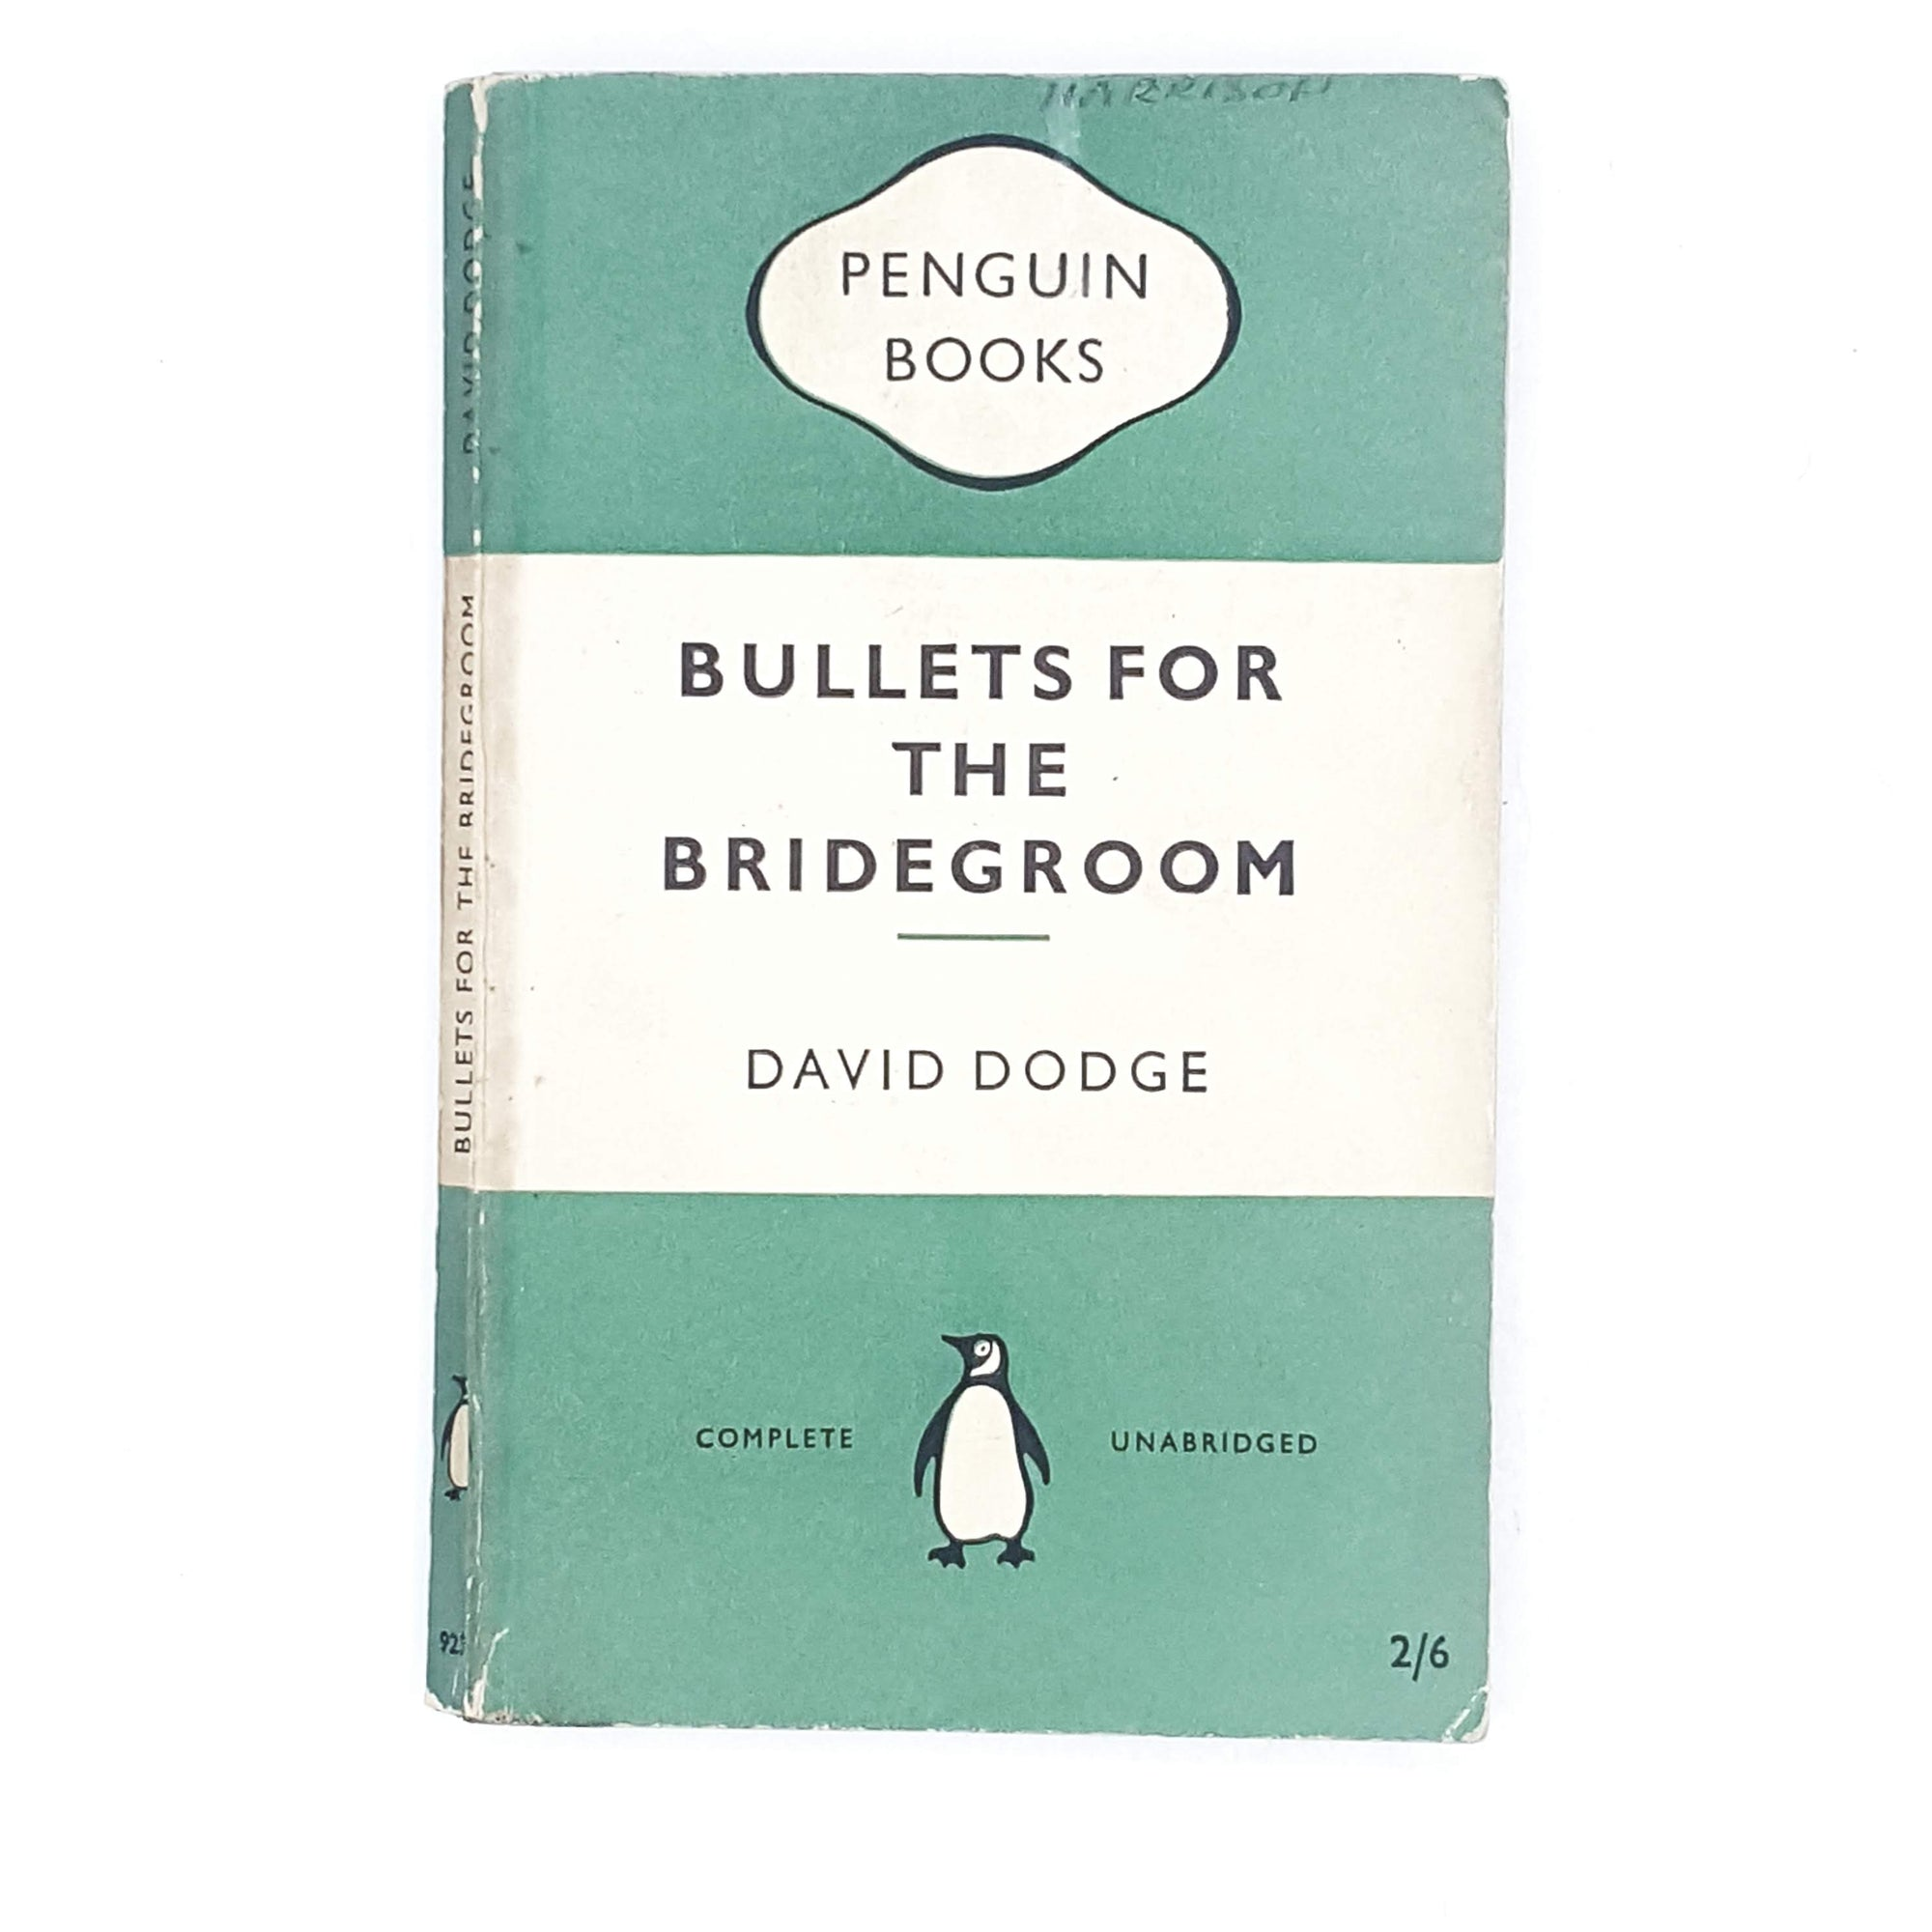 Bullets for the Bridegroom by David Dodge 1955